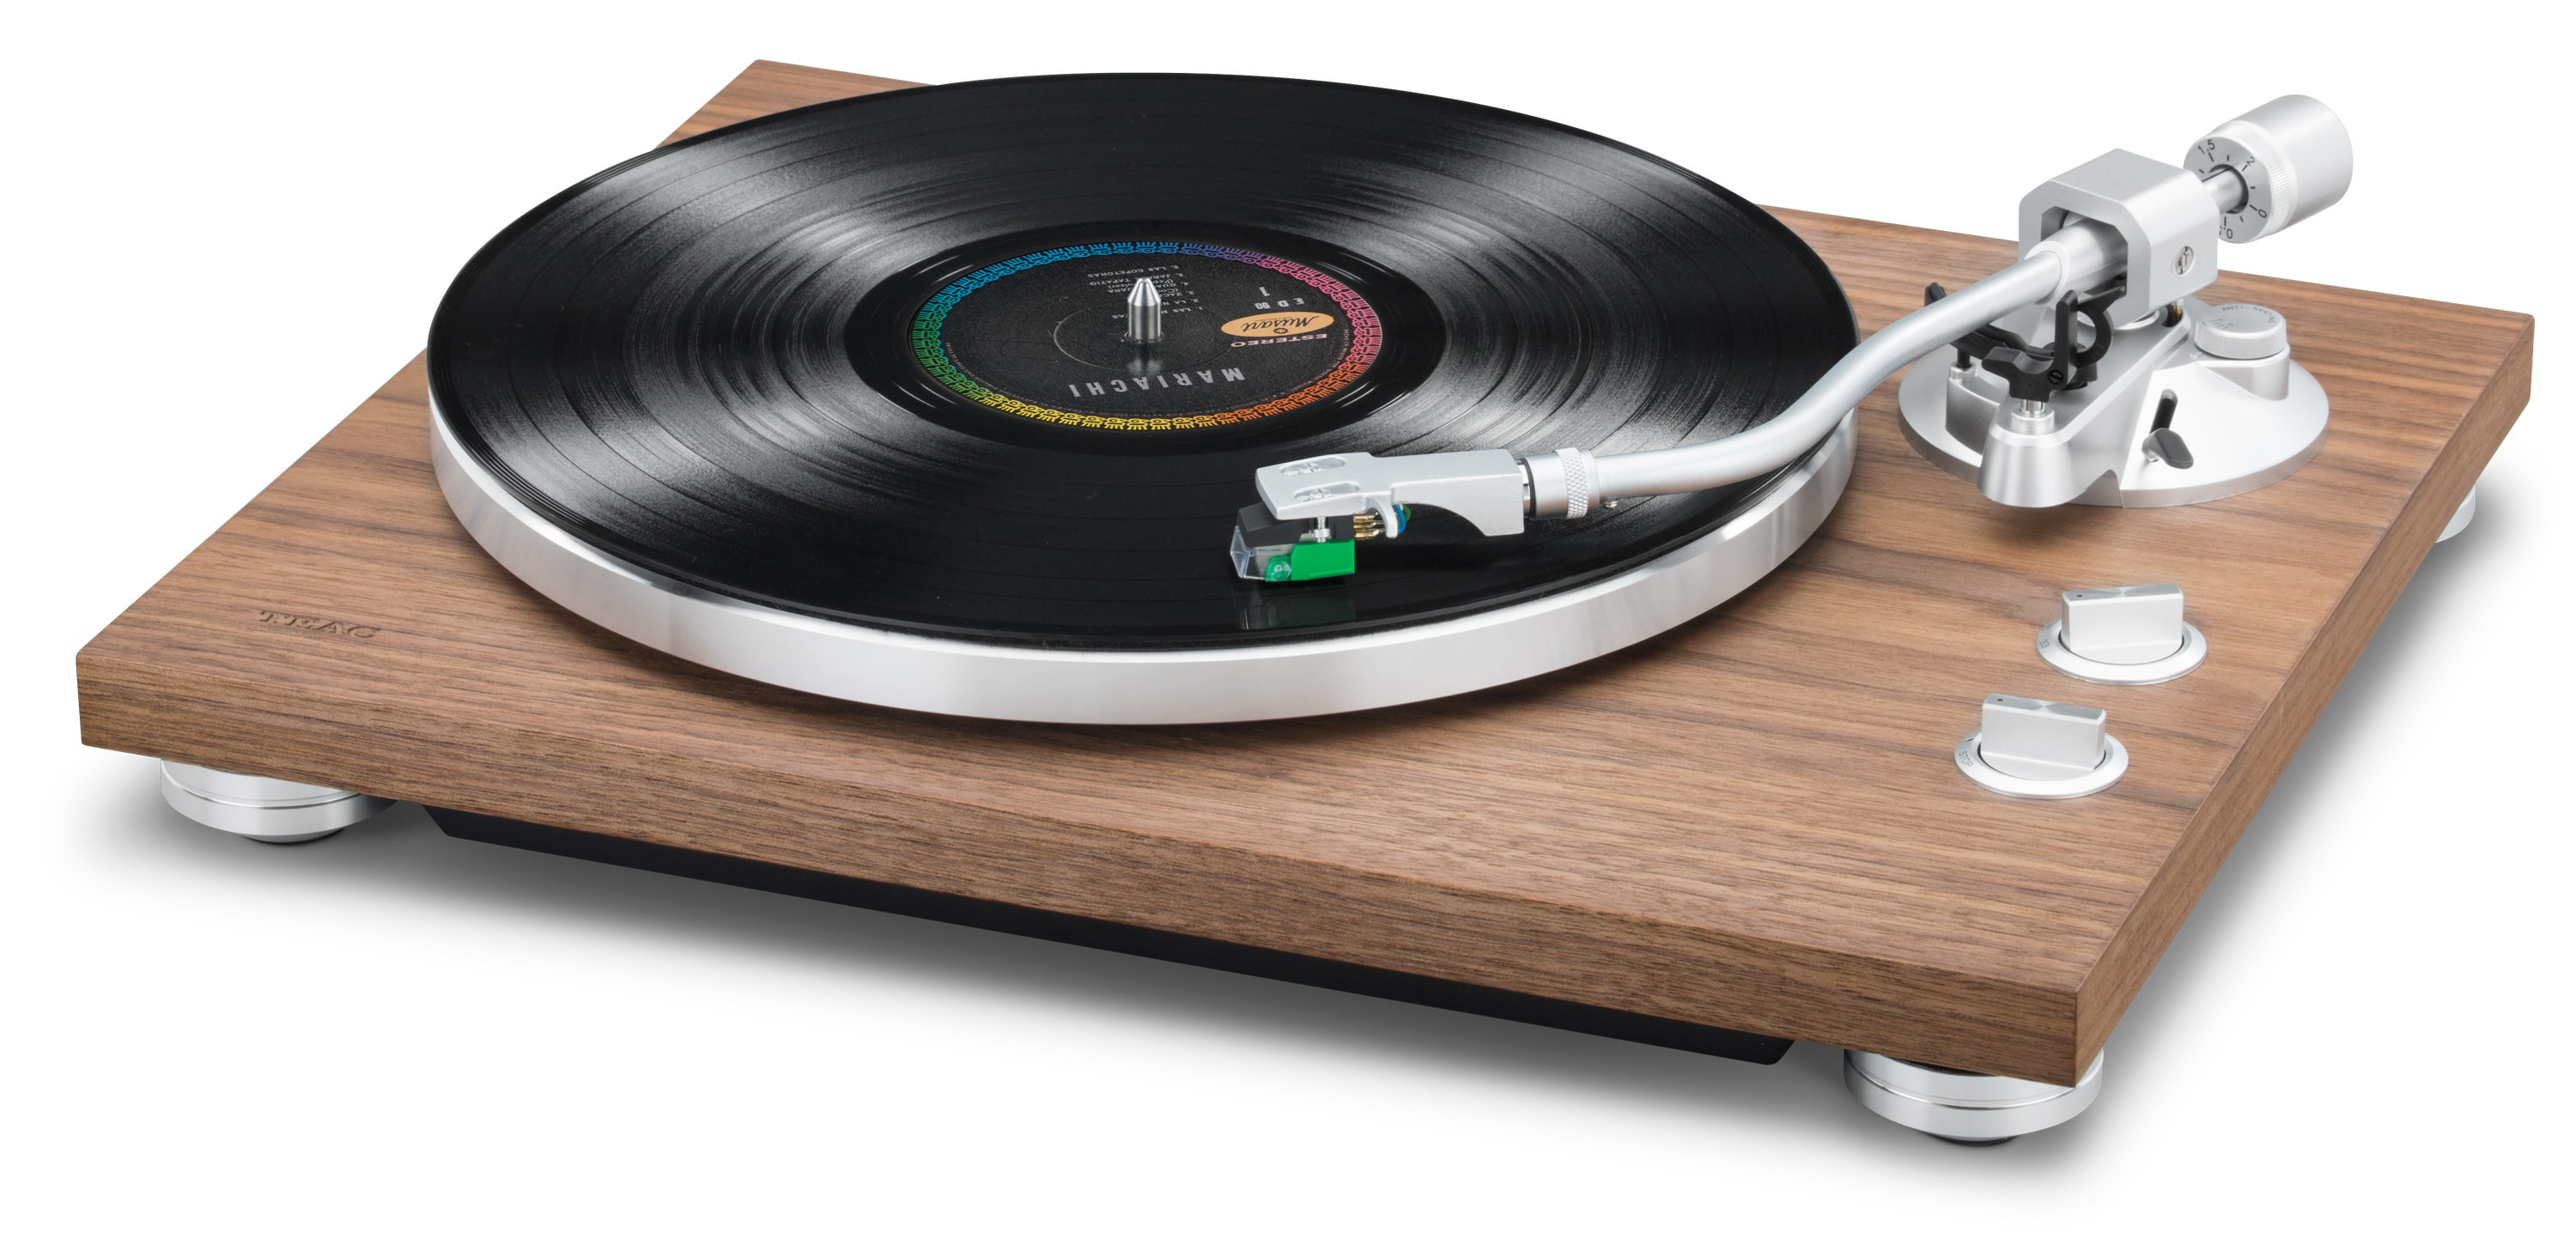 TEAC TN-400BT Turntable